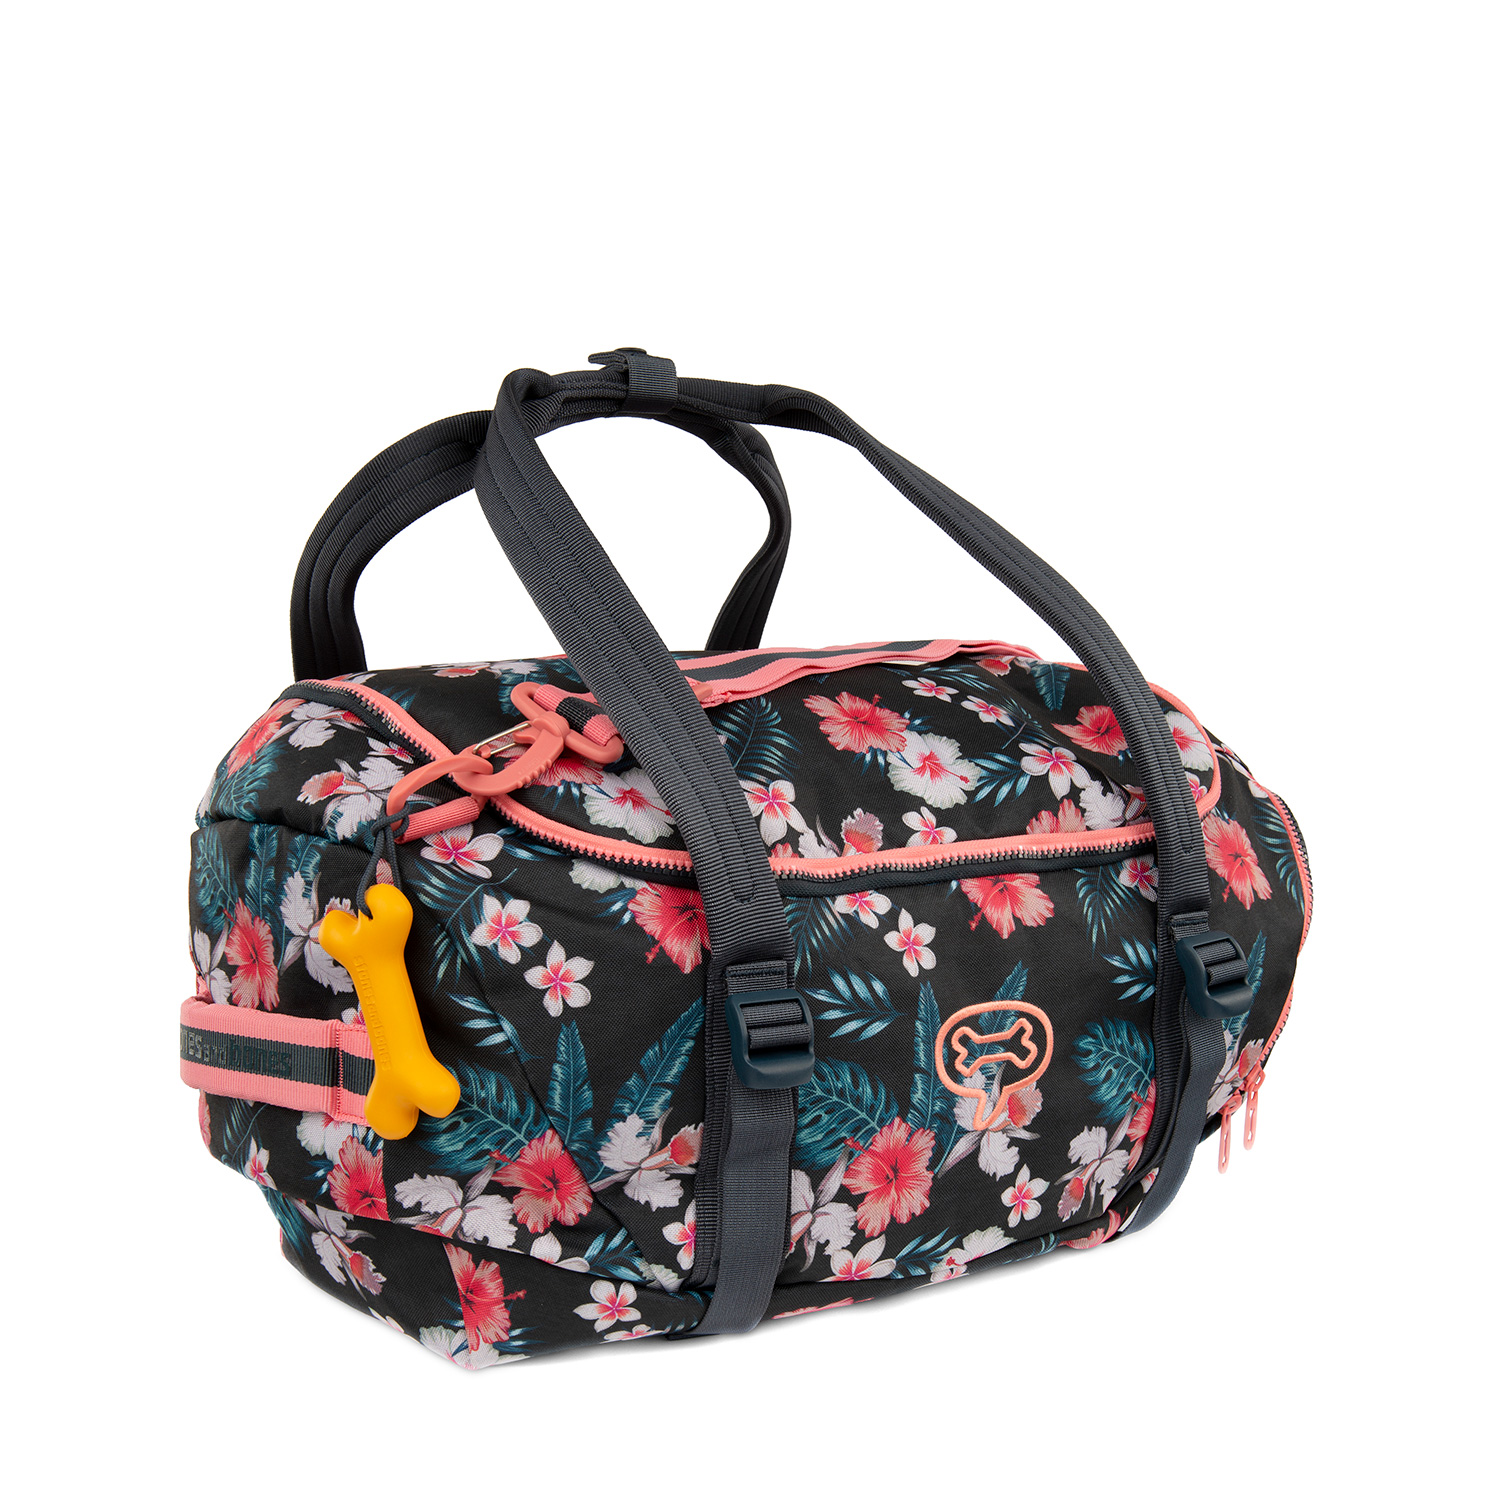 Daisy - FLOWERS navy